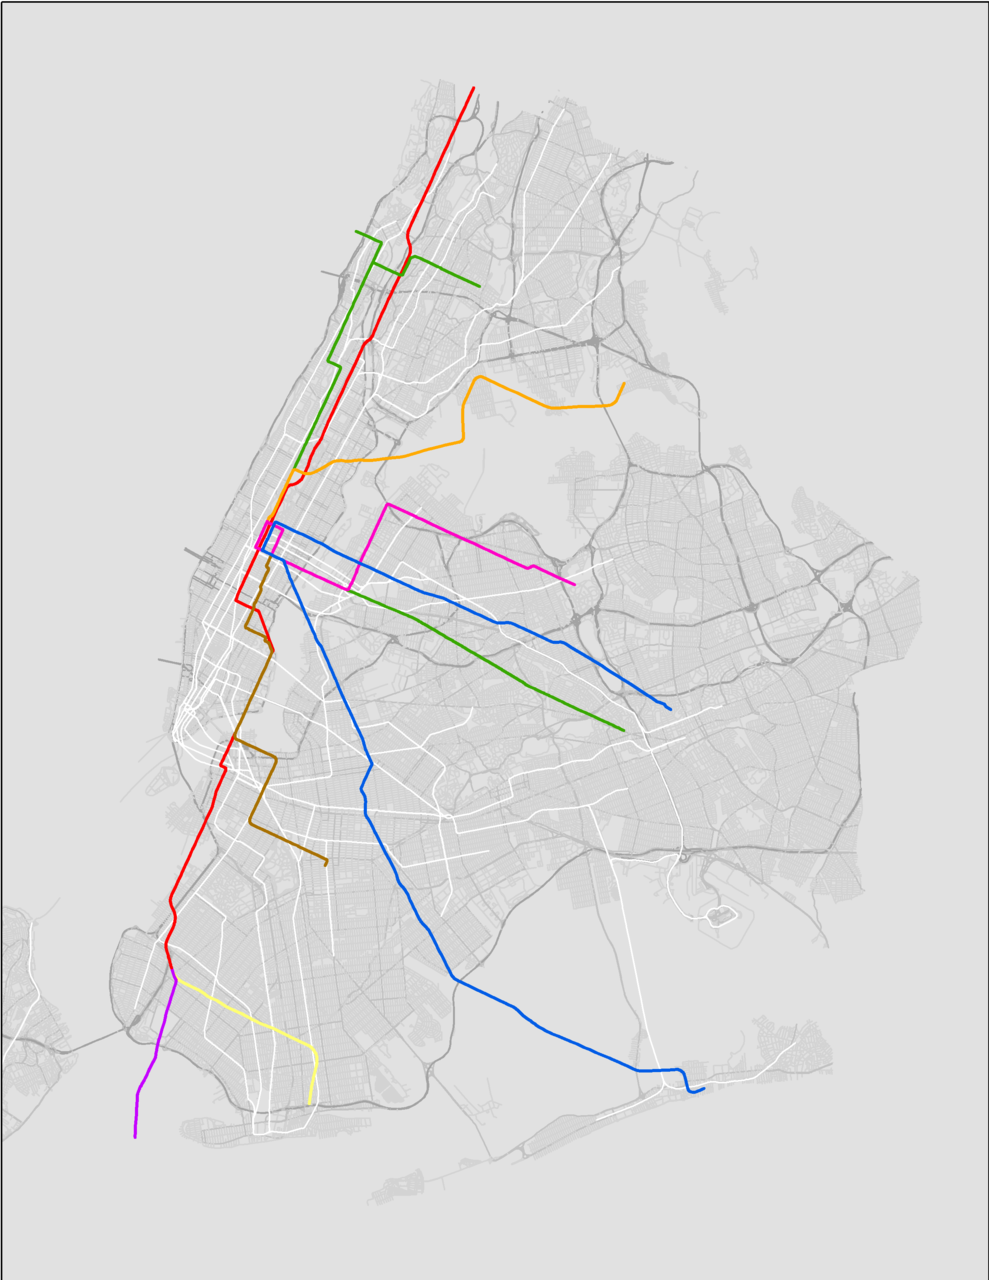 transitmaps:  Fantasy Map: Chicago El Overlaid On New York City A bit of whimsy for you today from Reddit, brought to my attention by Twitter user @GordonWerner. The El has been flipped both horizontally and vertically, then rotated to fit Manhattan's street grid, but the scaling is totally accurate. It looks like The Loop is placed in the area directly below Central Park. A few things from this: it's actually kind of scary how well this fits; and it's astounding just how dense the New York subway's lines really are (shown here in white). (Source: Reddit)